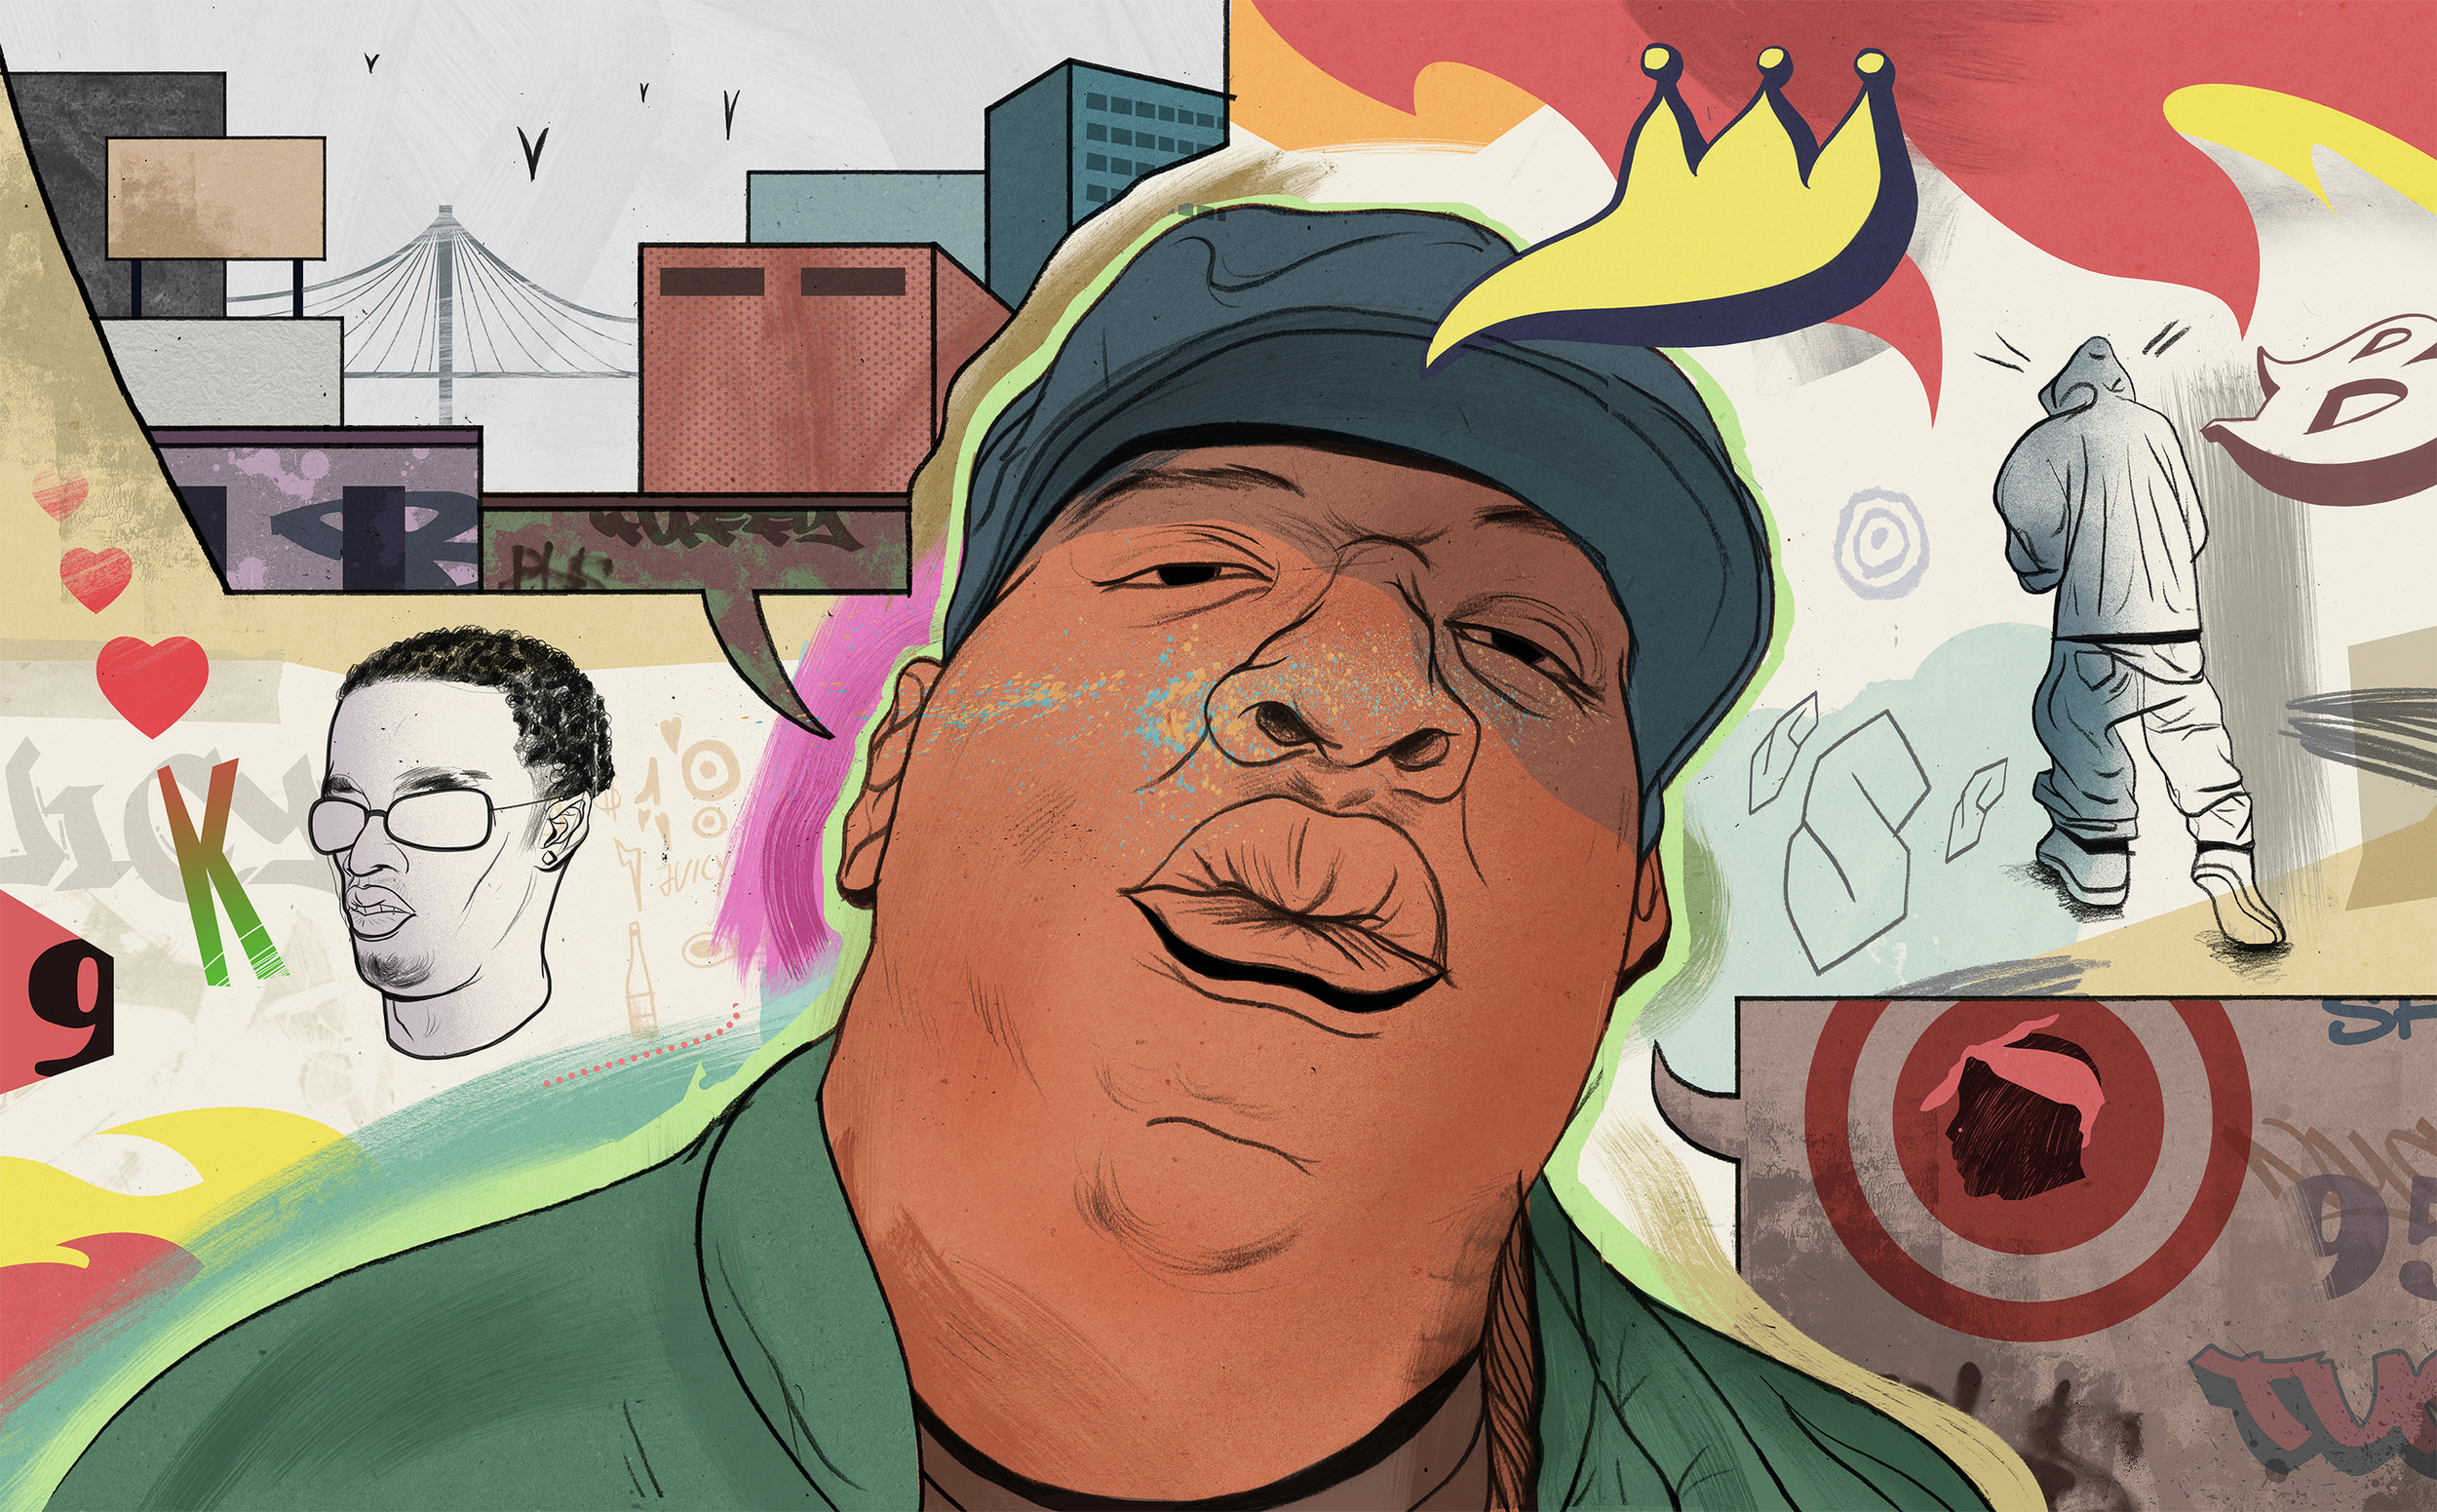 Biggie   Portraiture  From a series around 90s hip hop in Brooklyn